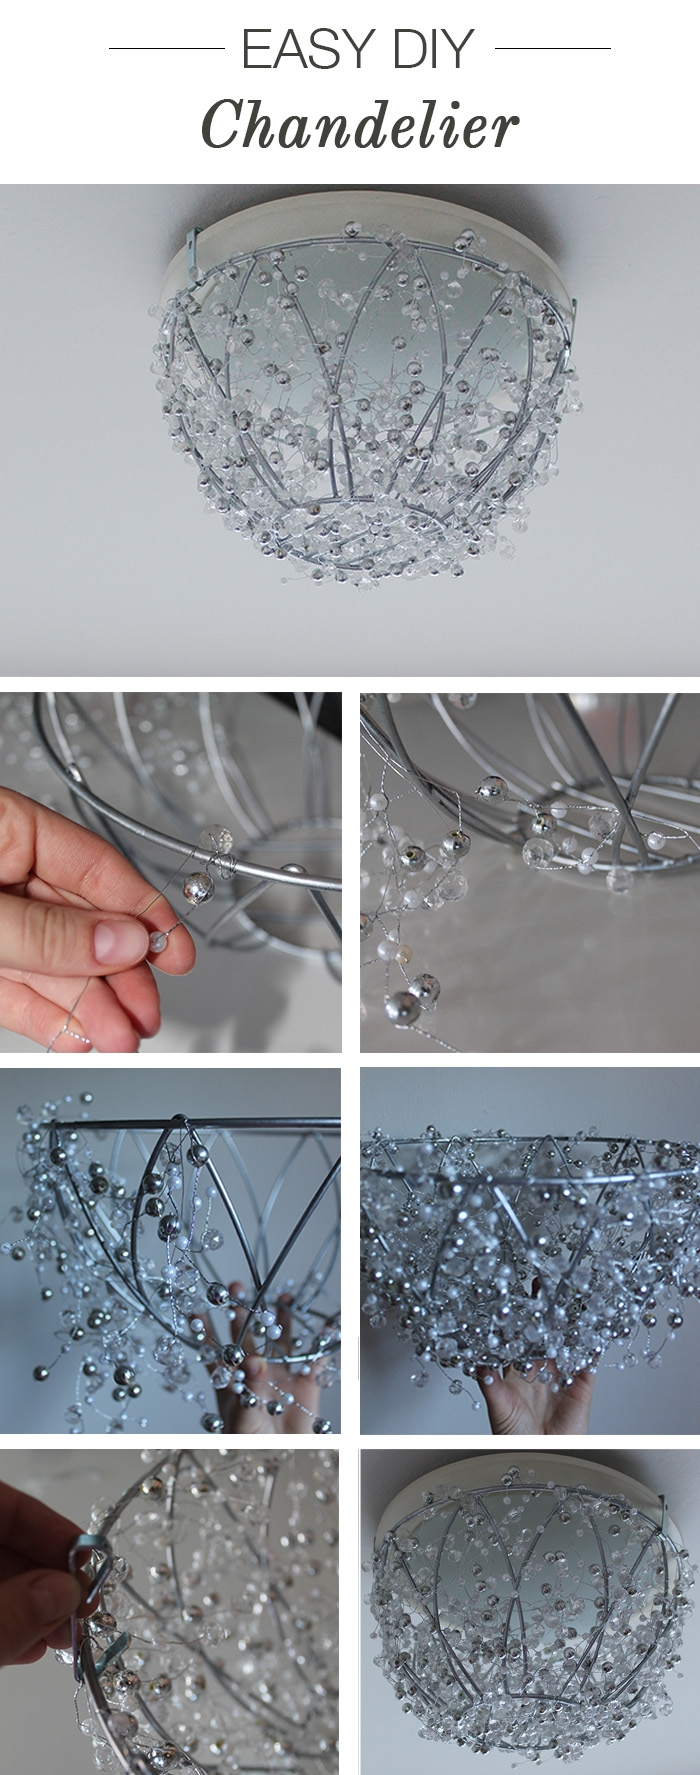 easy diy chandelier project